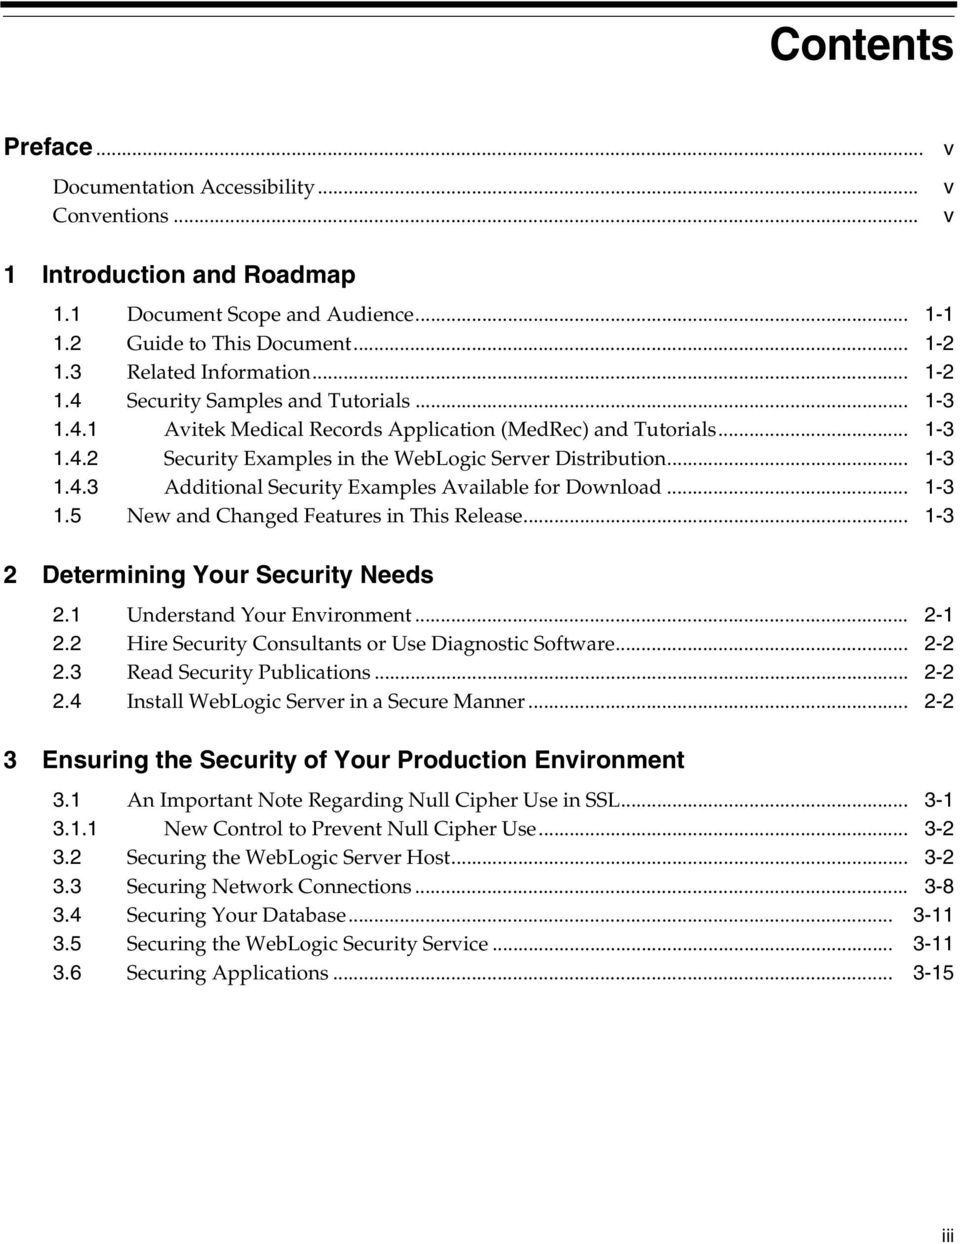 Securing a Production Environment for Oracle WebLogic Server g